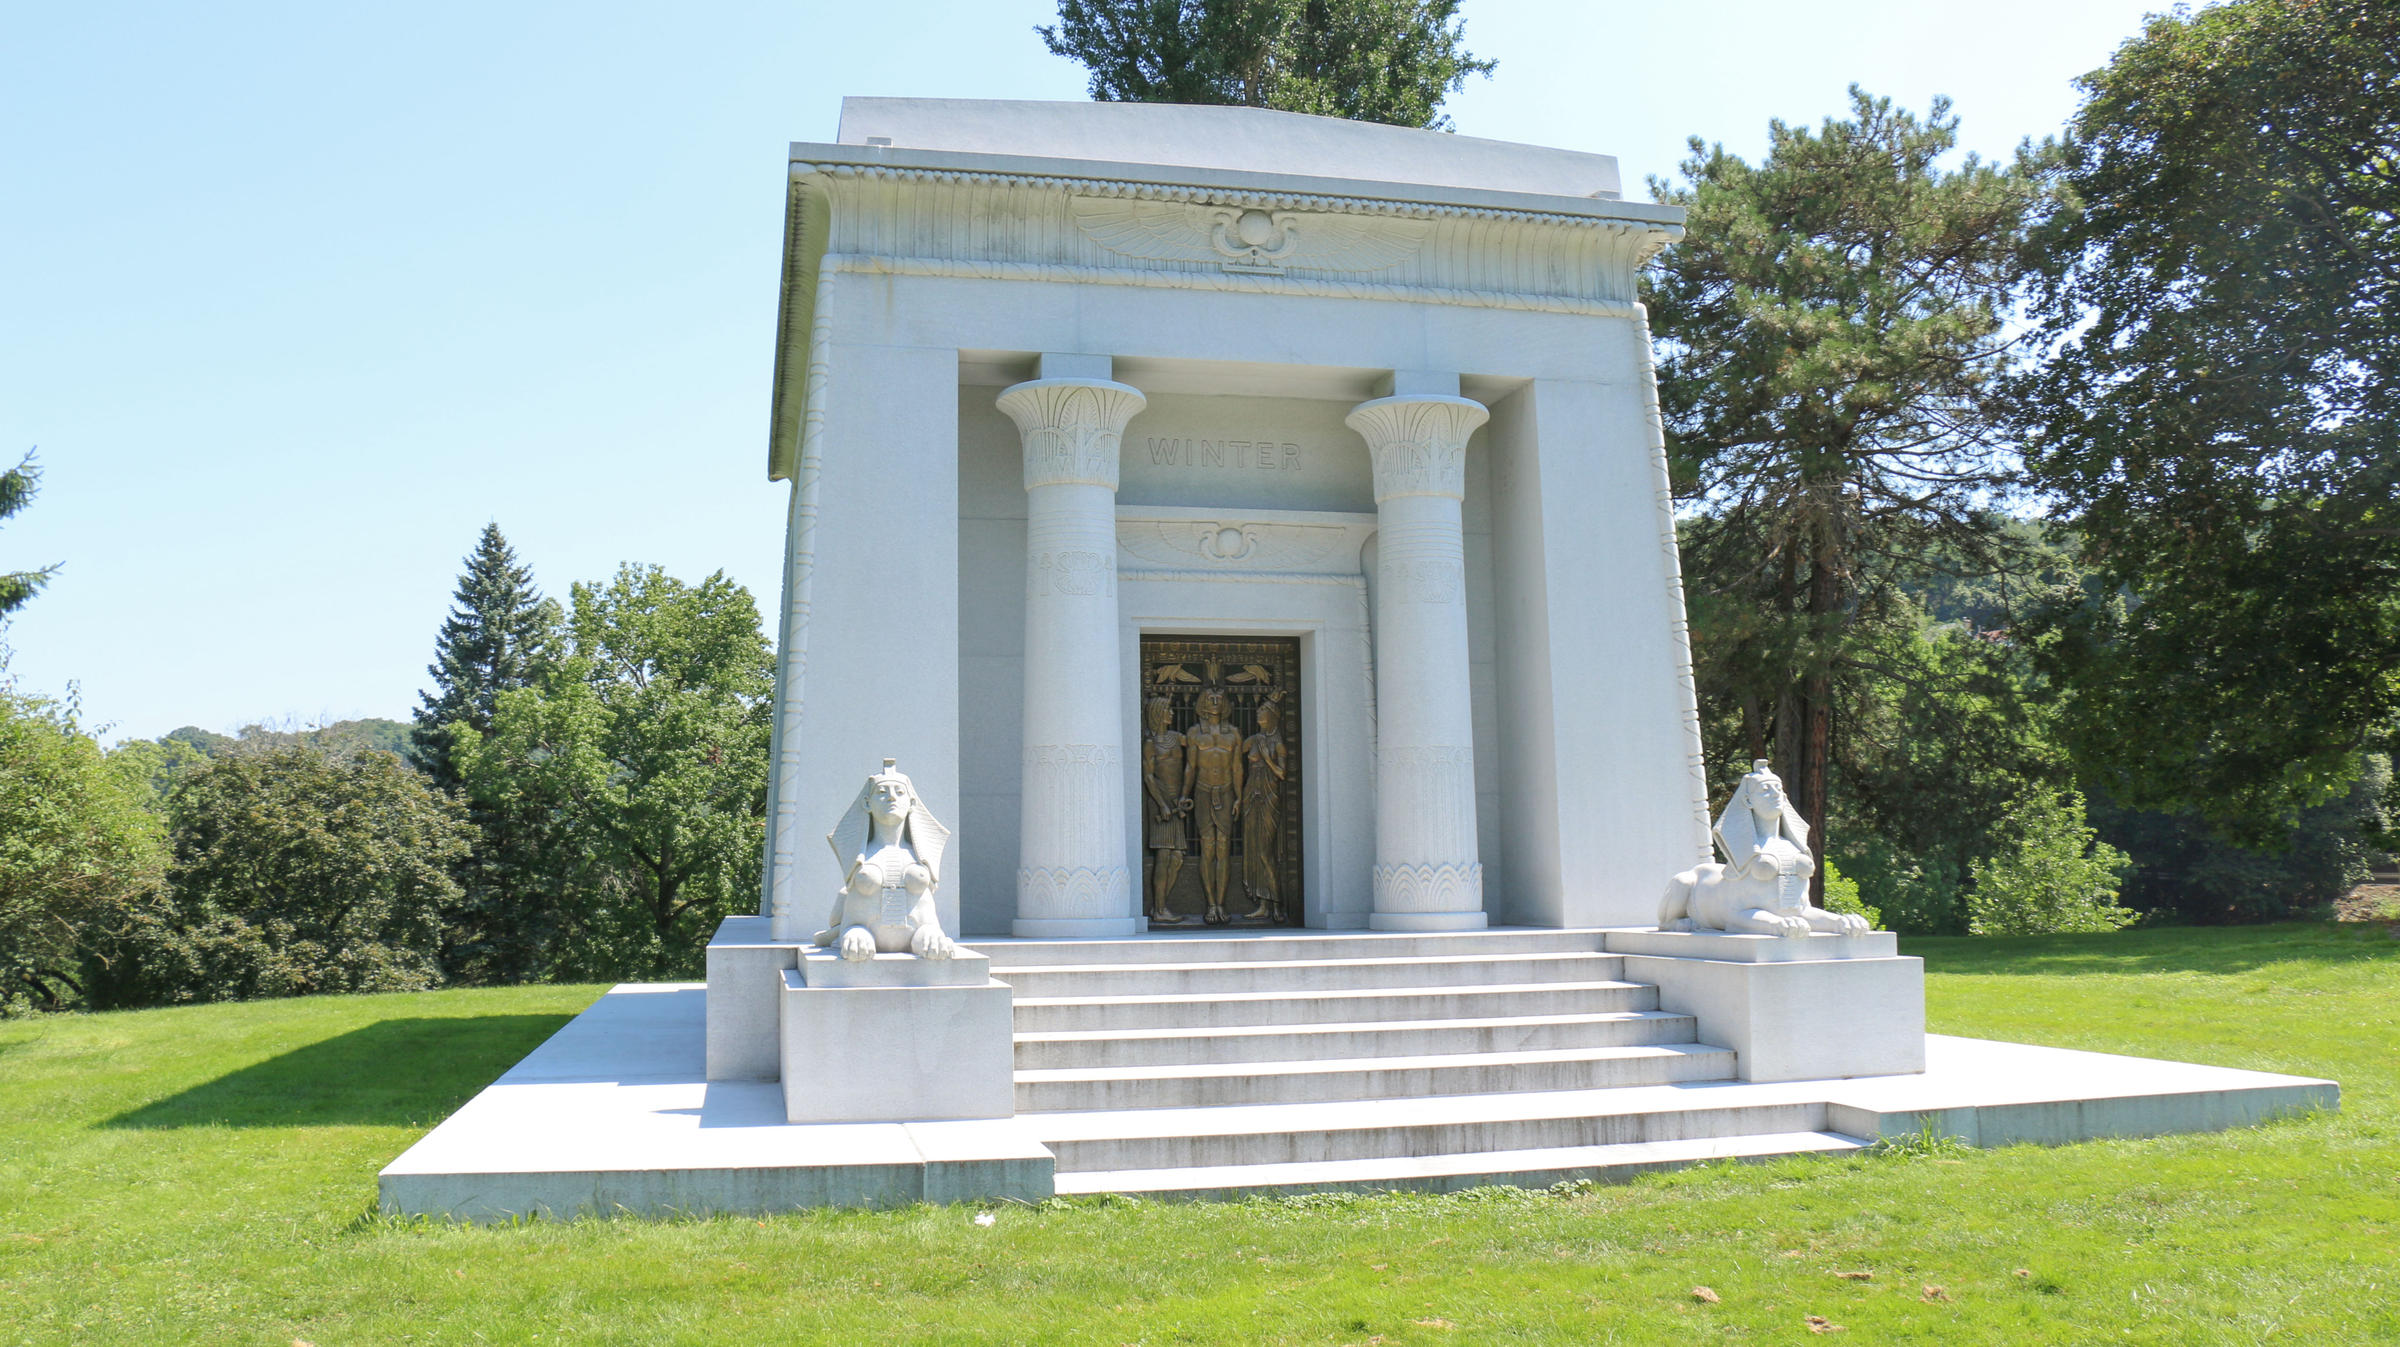 the story behind that giant egyptian themed mausoleum in allegheny